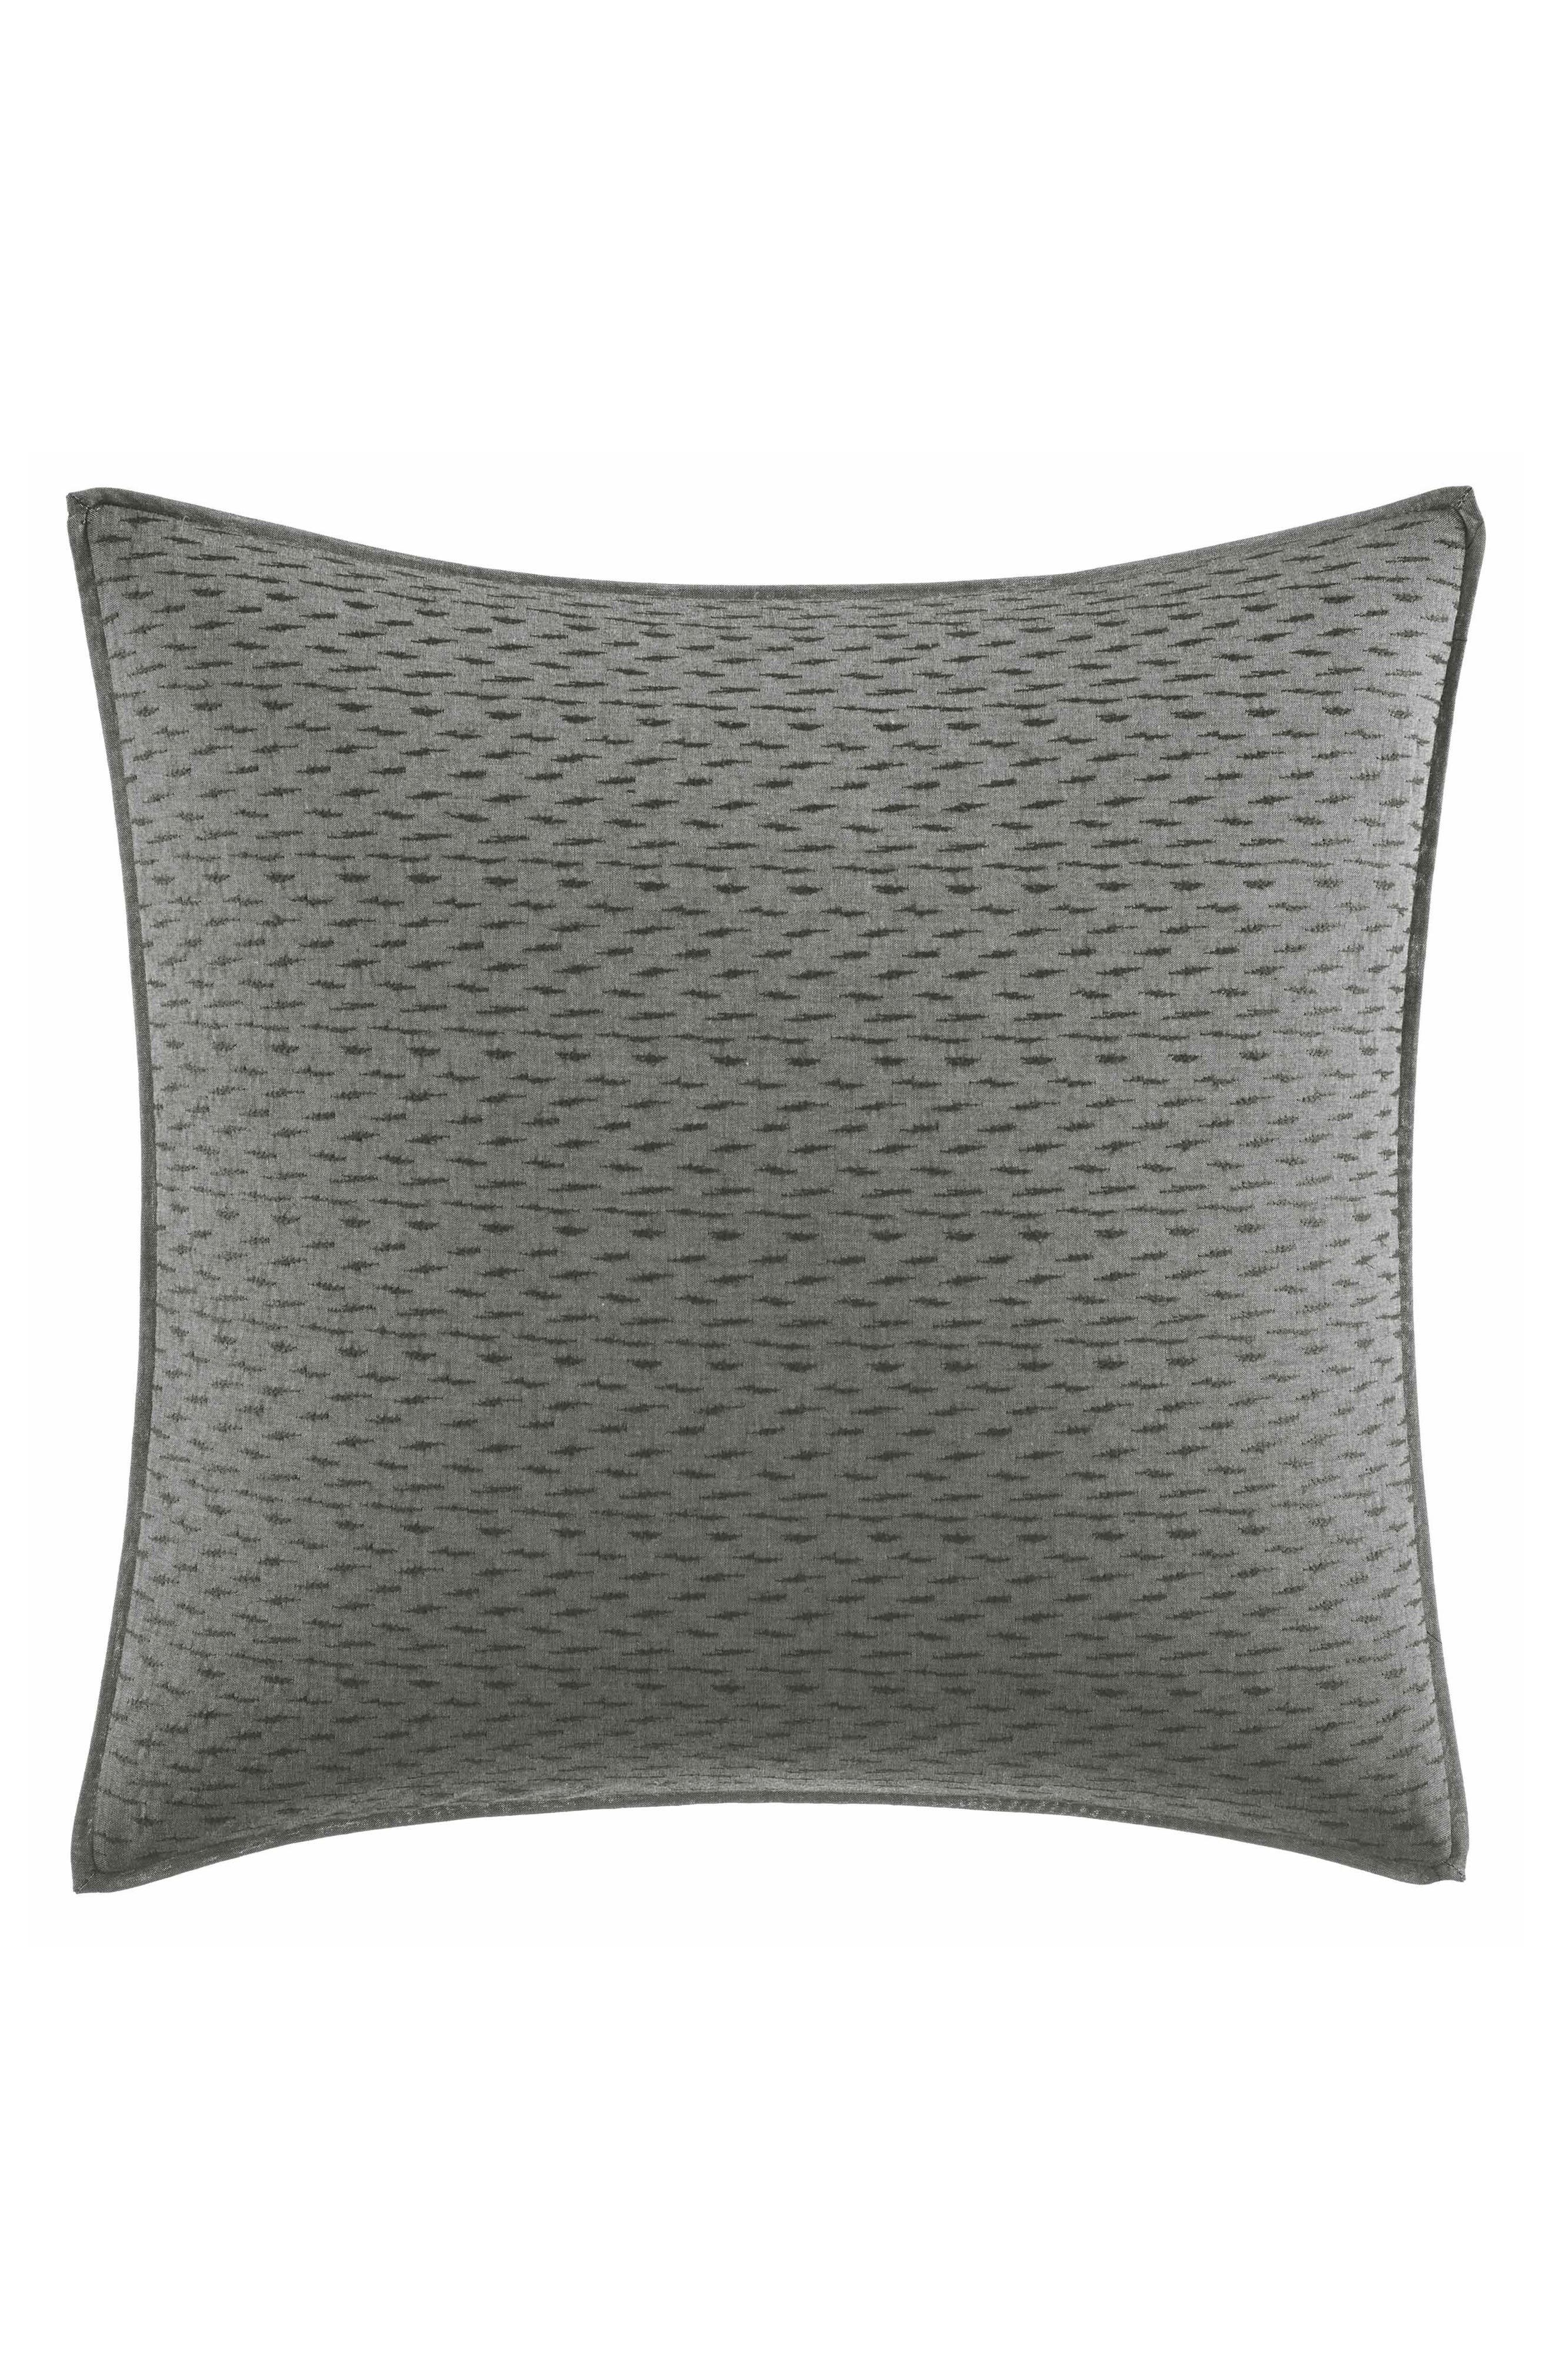 Charcoal Floral Accent Pillow,                         Main,                         color, Charcoal